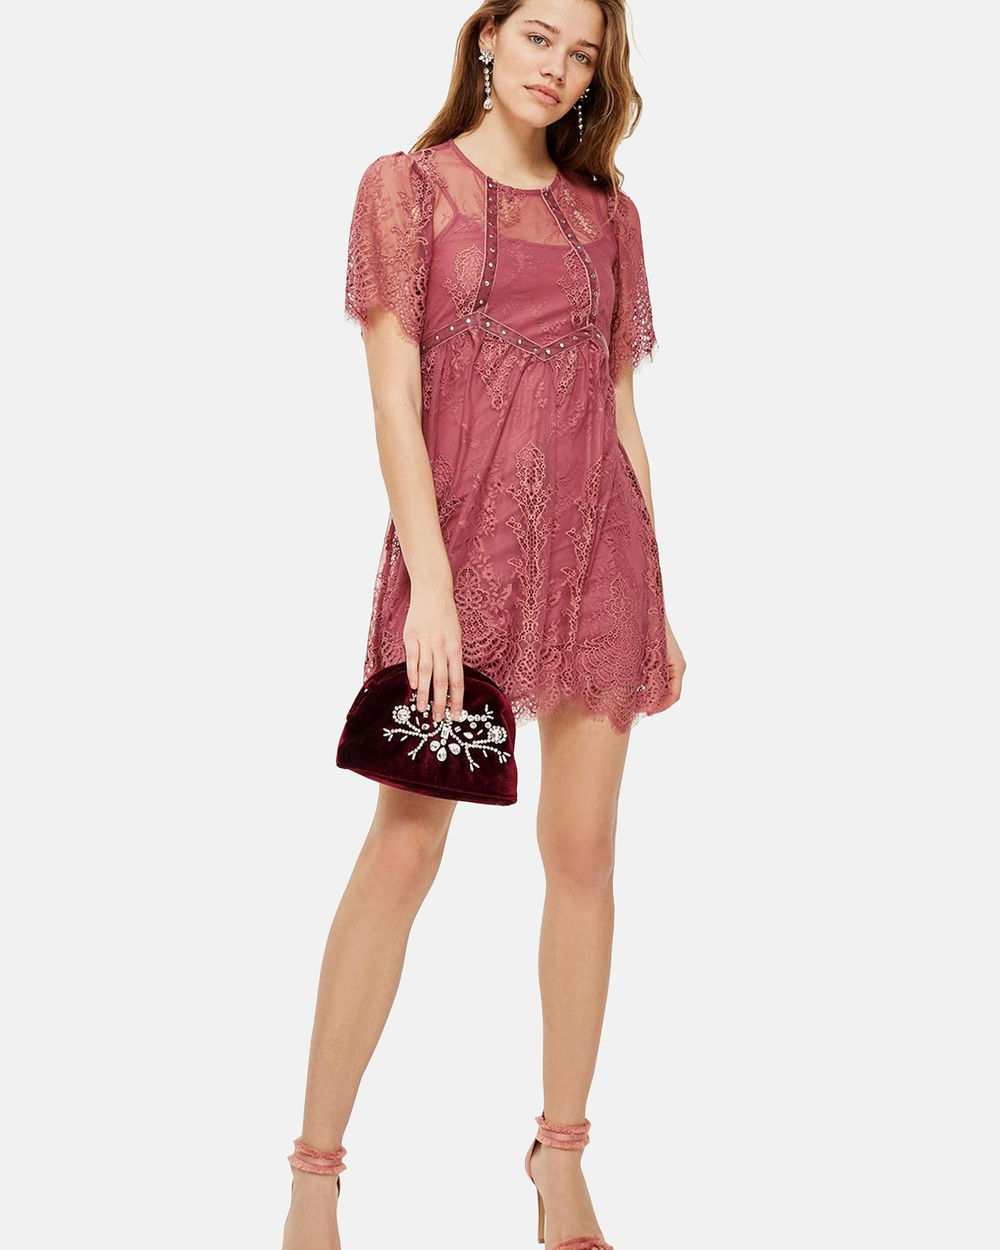 TOPSHOP Velvet Trim Lace Flippy Dress Dresses Dark Pink Velvet Trim Lace Flippy Dress